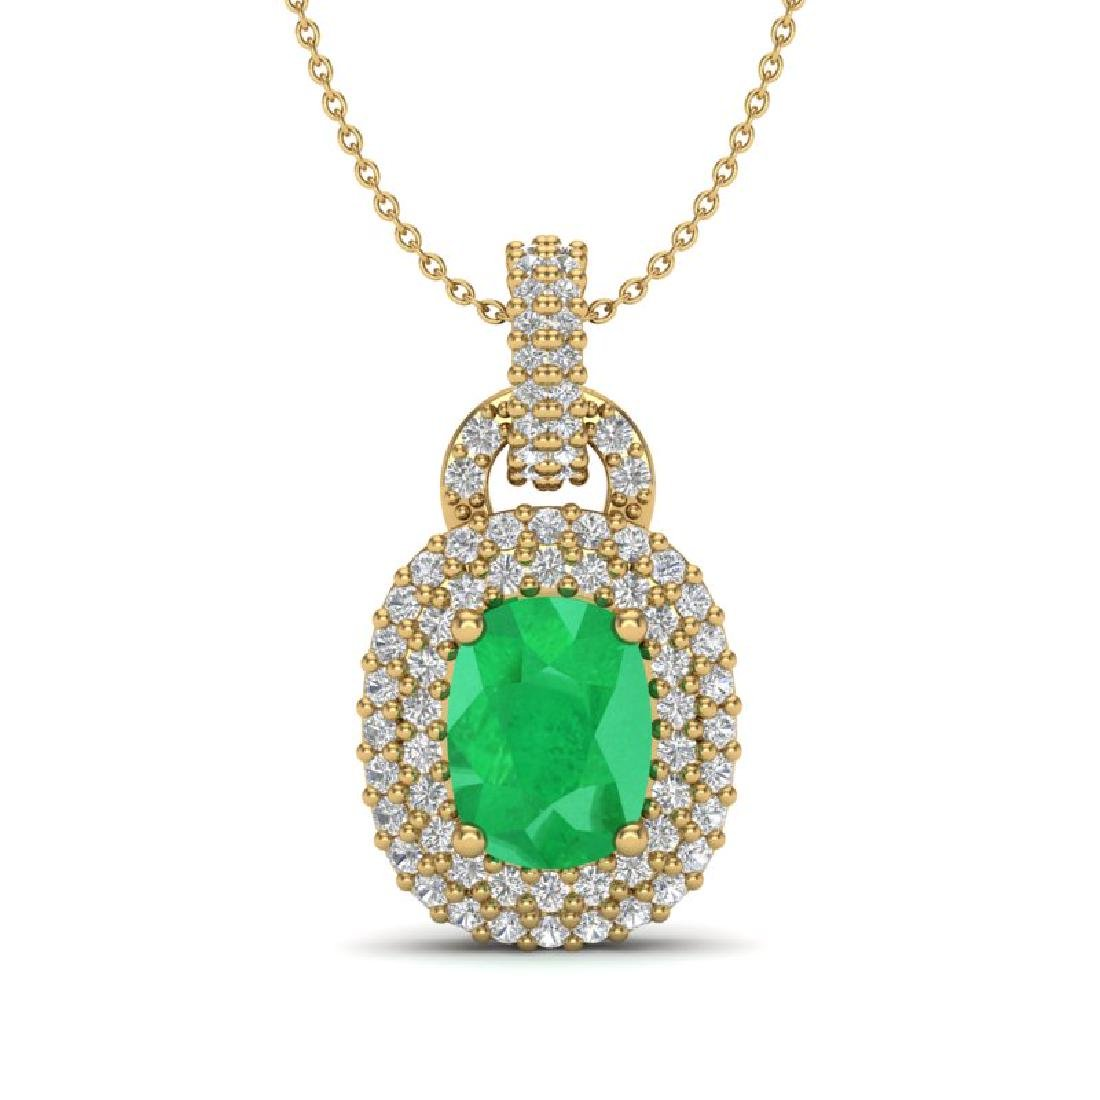 2.50 CTW Emerald & Micro Pave VS/SI Diamond Necklace